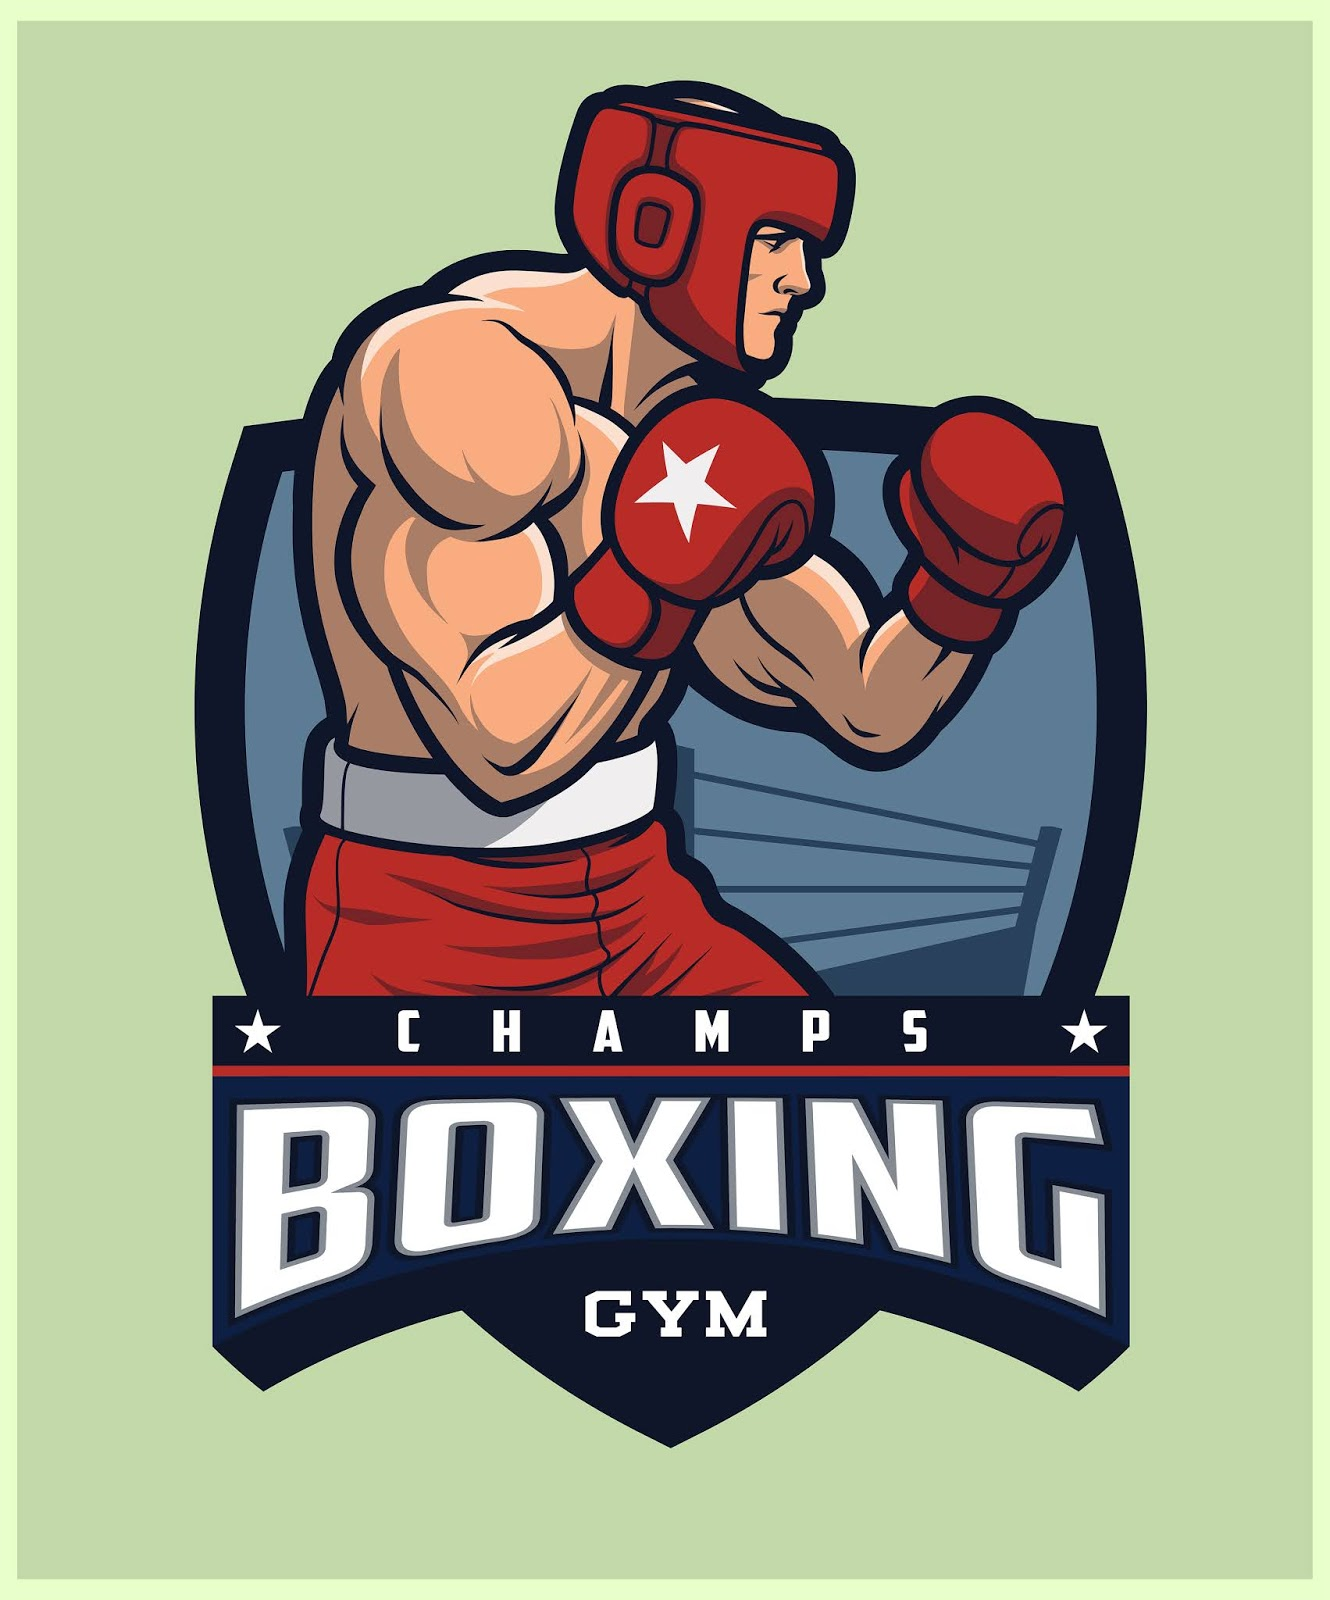 Boxing Logo Boxer Wearing Headgear Training.jpg Free Download Vector CDR, AI, EPS and PNG Formats